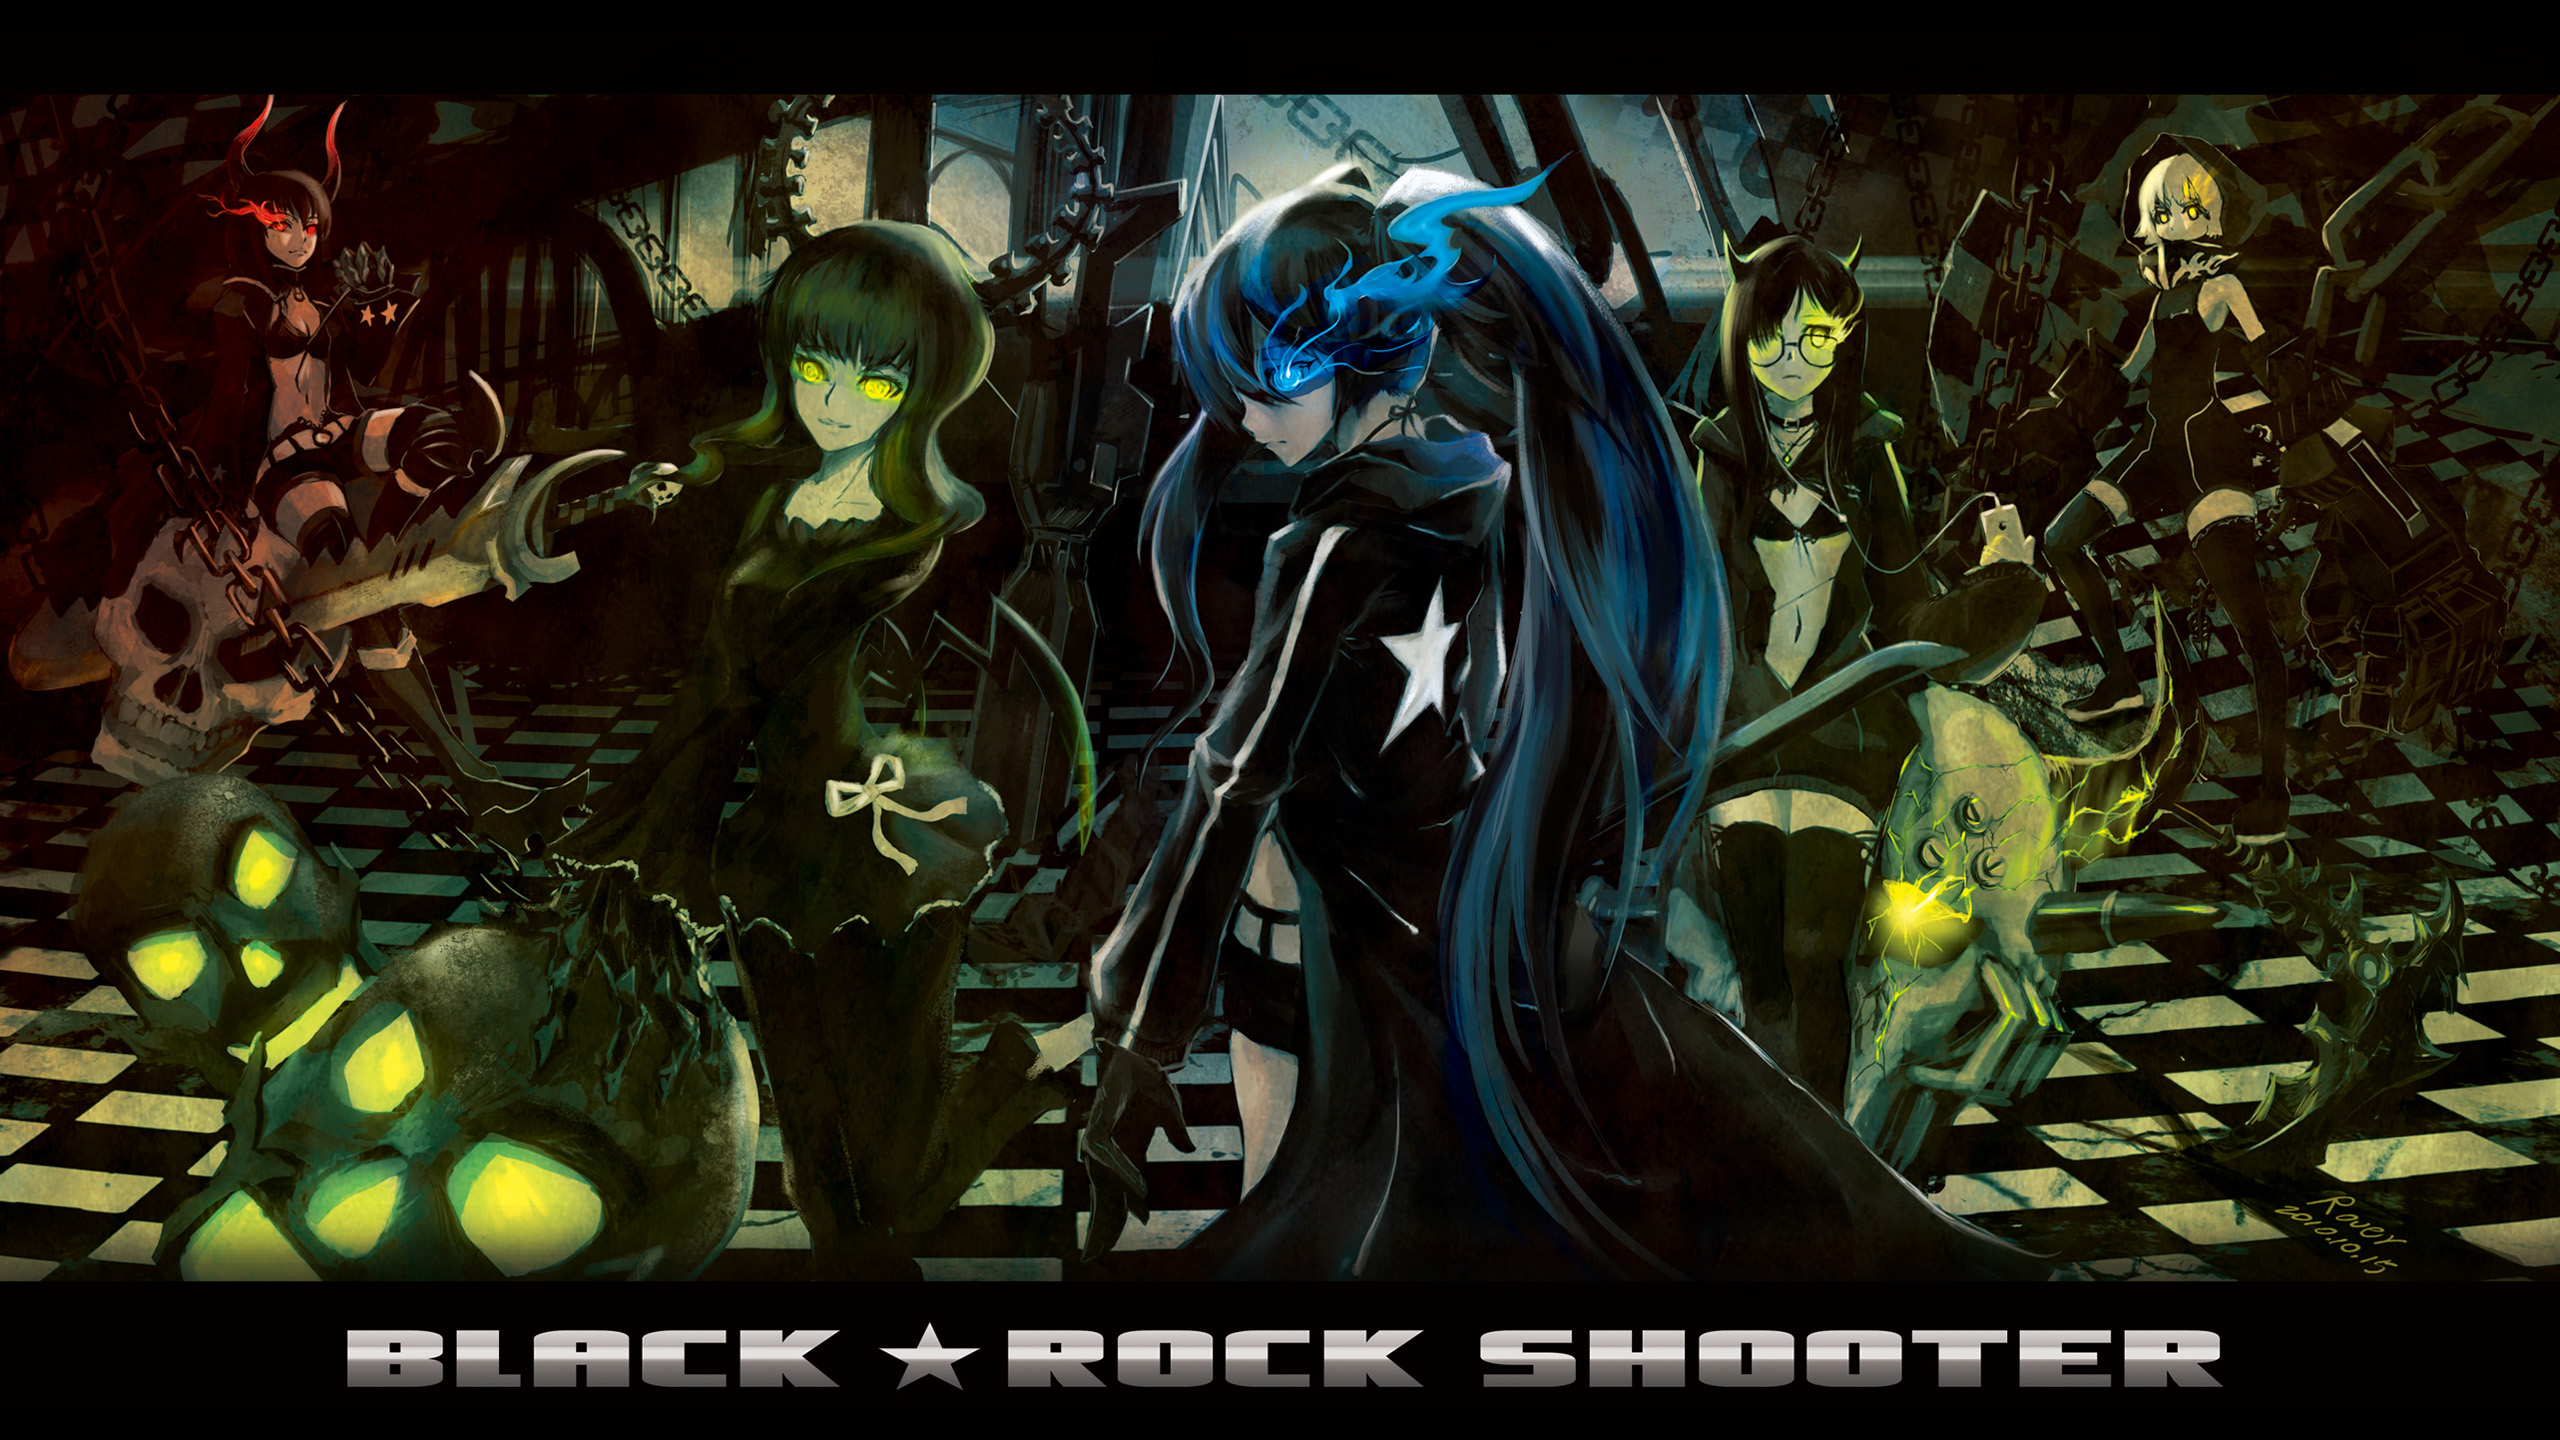 71 Strength Black Rock Shooter HD Wallpapers Background Images 2560x1440